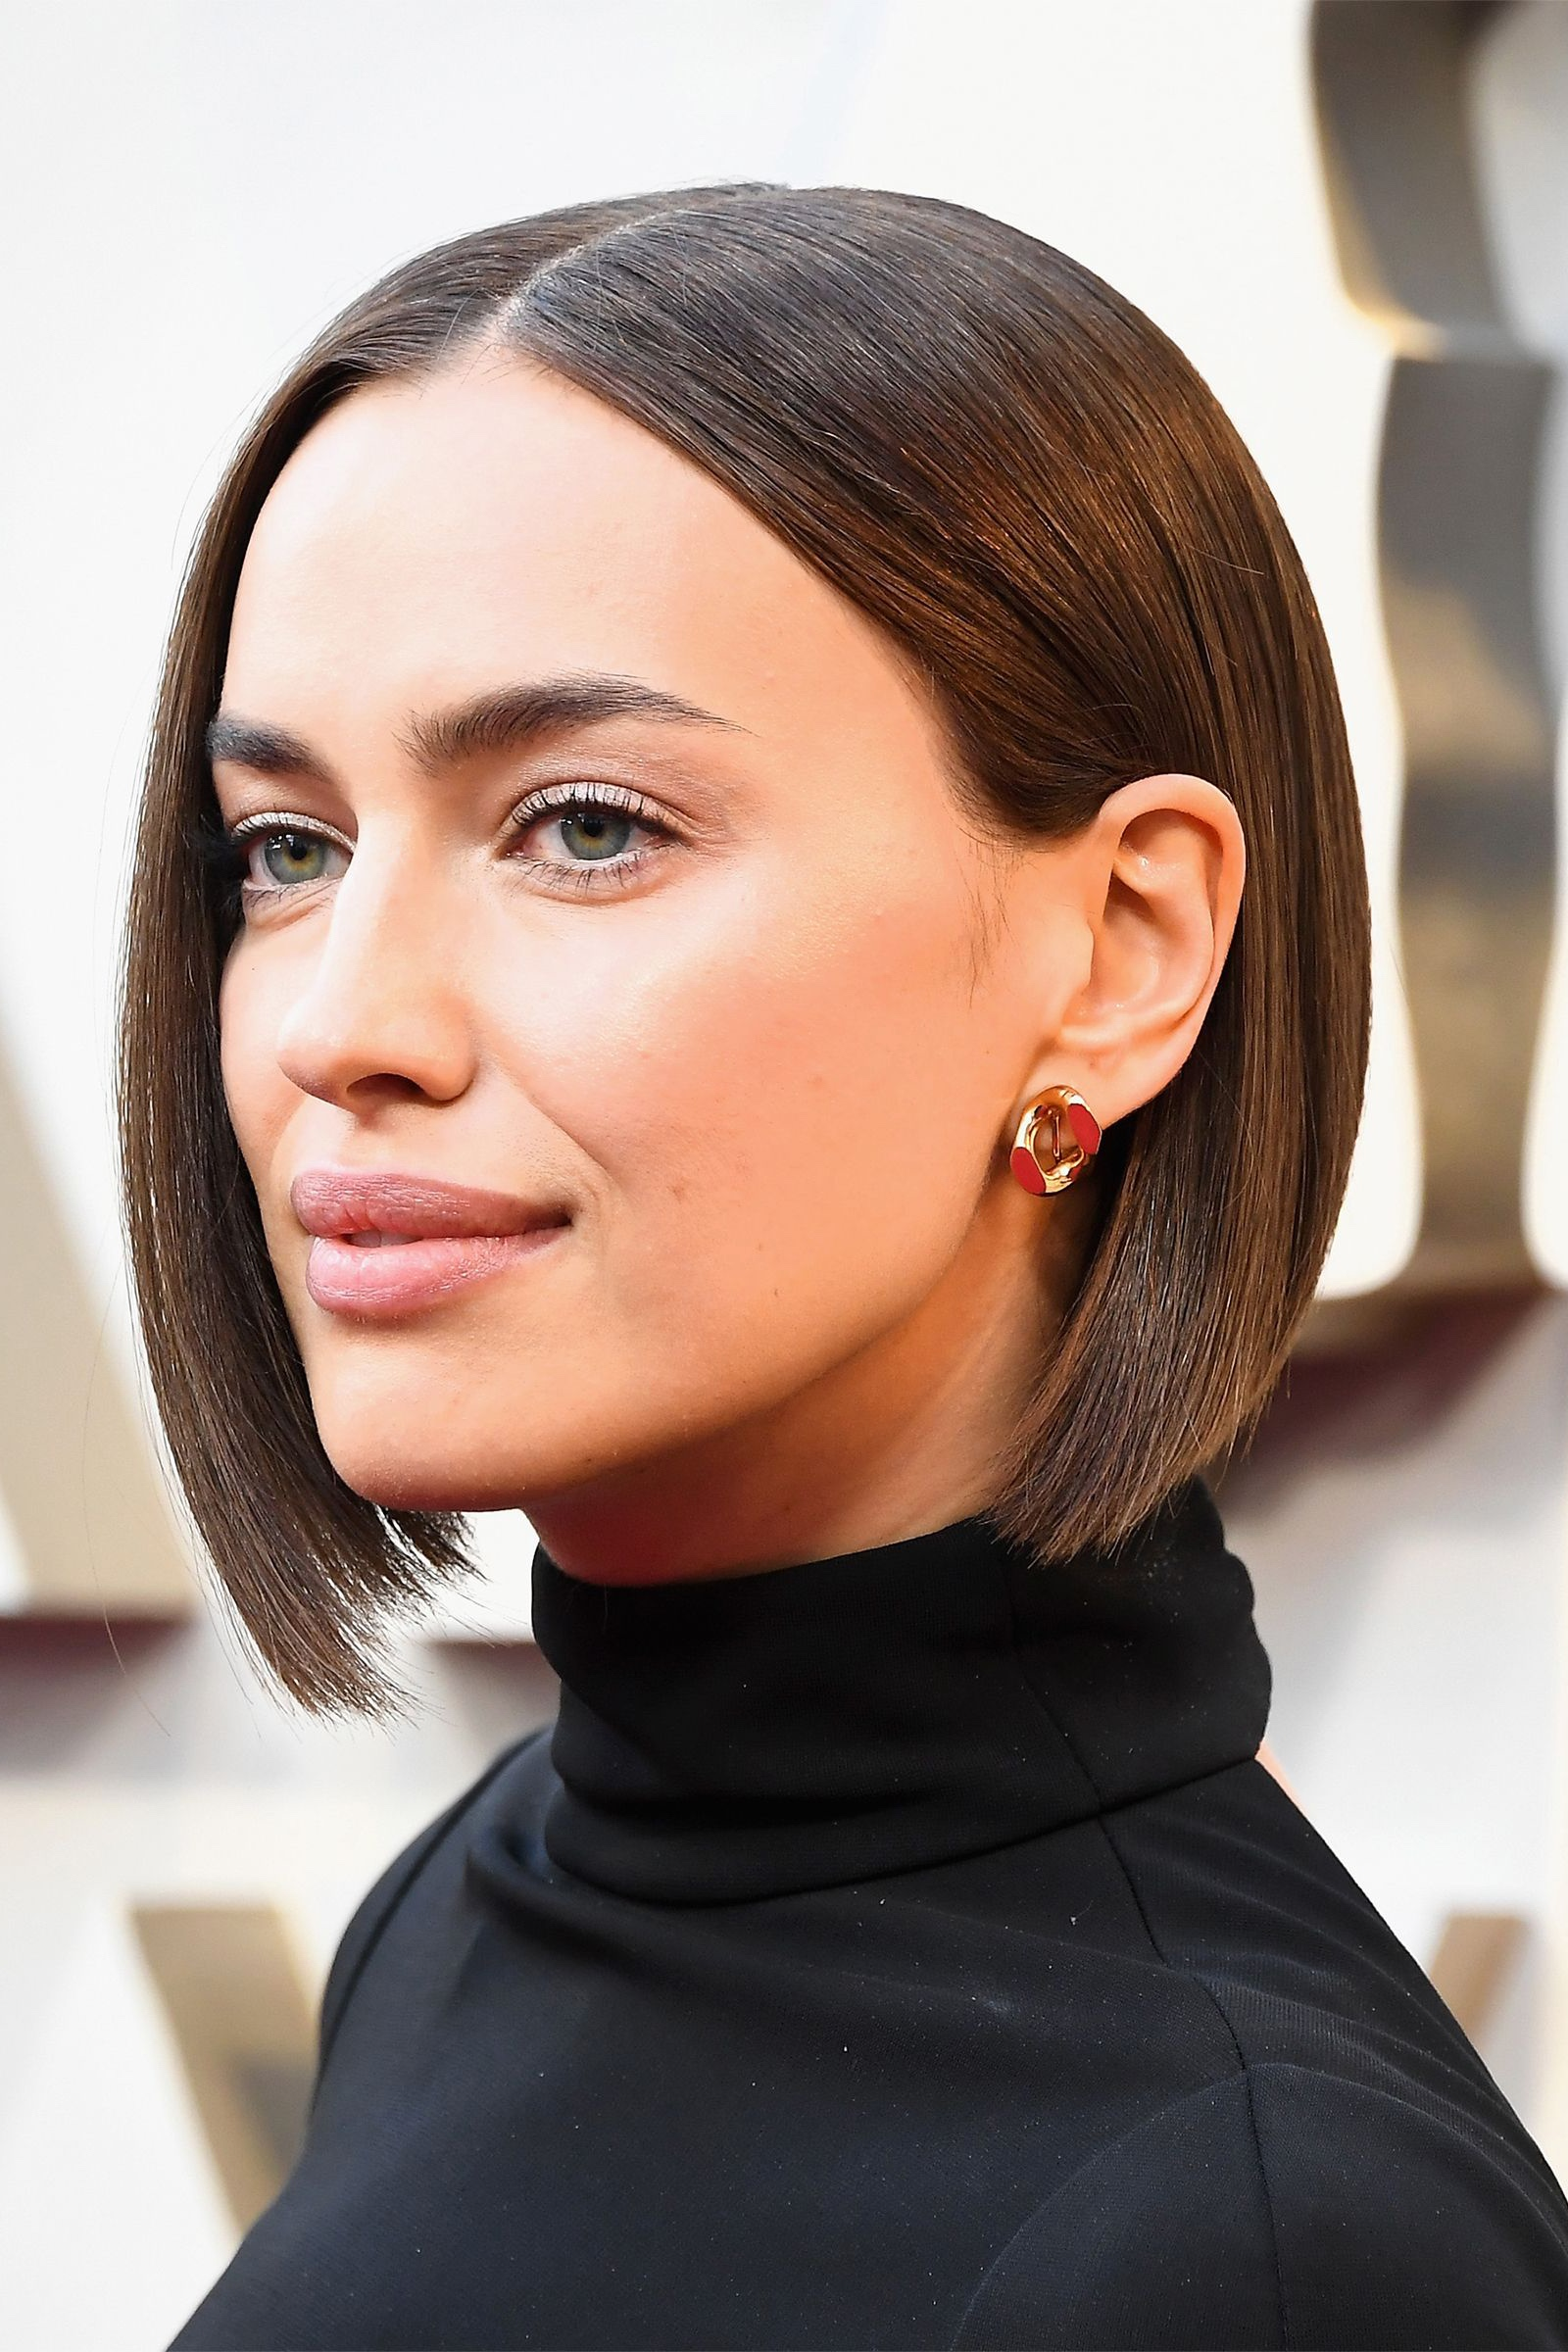 Irina Shayk's High-Shine Precision Bob - Bradley Cooper's Significant Other looked utterly amazing at the Oscars because of the handiwork of two individuals: Hair god Harry Josh and makeup whiz Tatyana Makarova for Marc Jacobs Beauty. For the big night, Josh whacked a few inches off Shayk's previous lob before coaxing her chocolate locks into a state of serious high shine. As for the maquillage, Makarova paired a smokey eye with a glossy nude lip. Dewy and dazzling, with arguably the best coif of the evening. Winning.